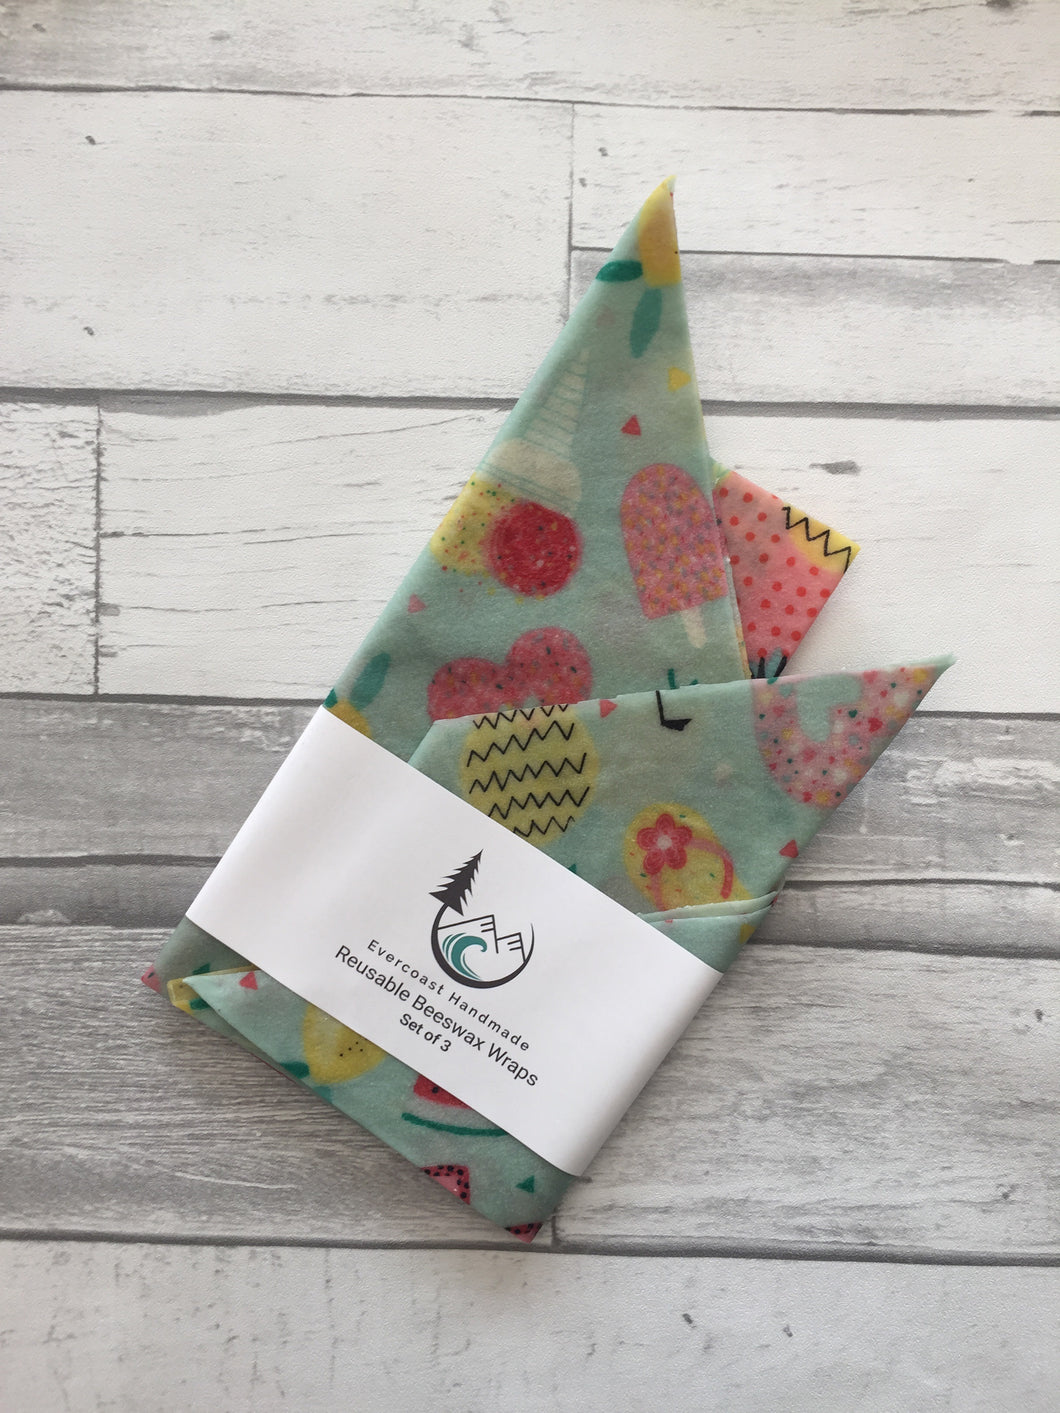 Summer Fruit Beeswax Wraps – Classic Set of 3